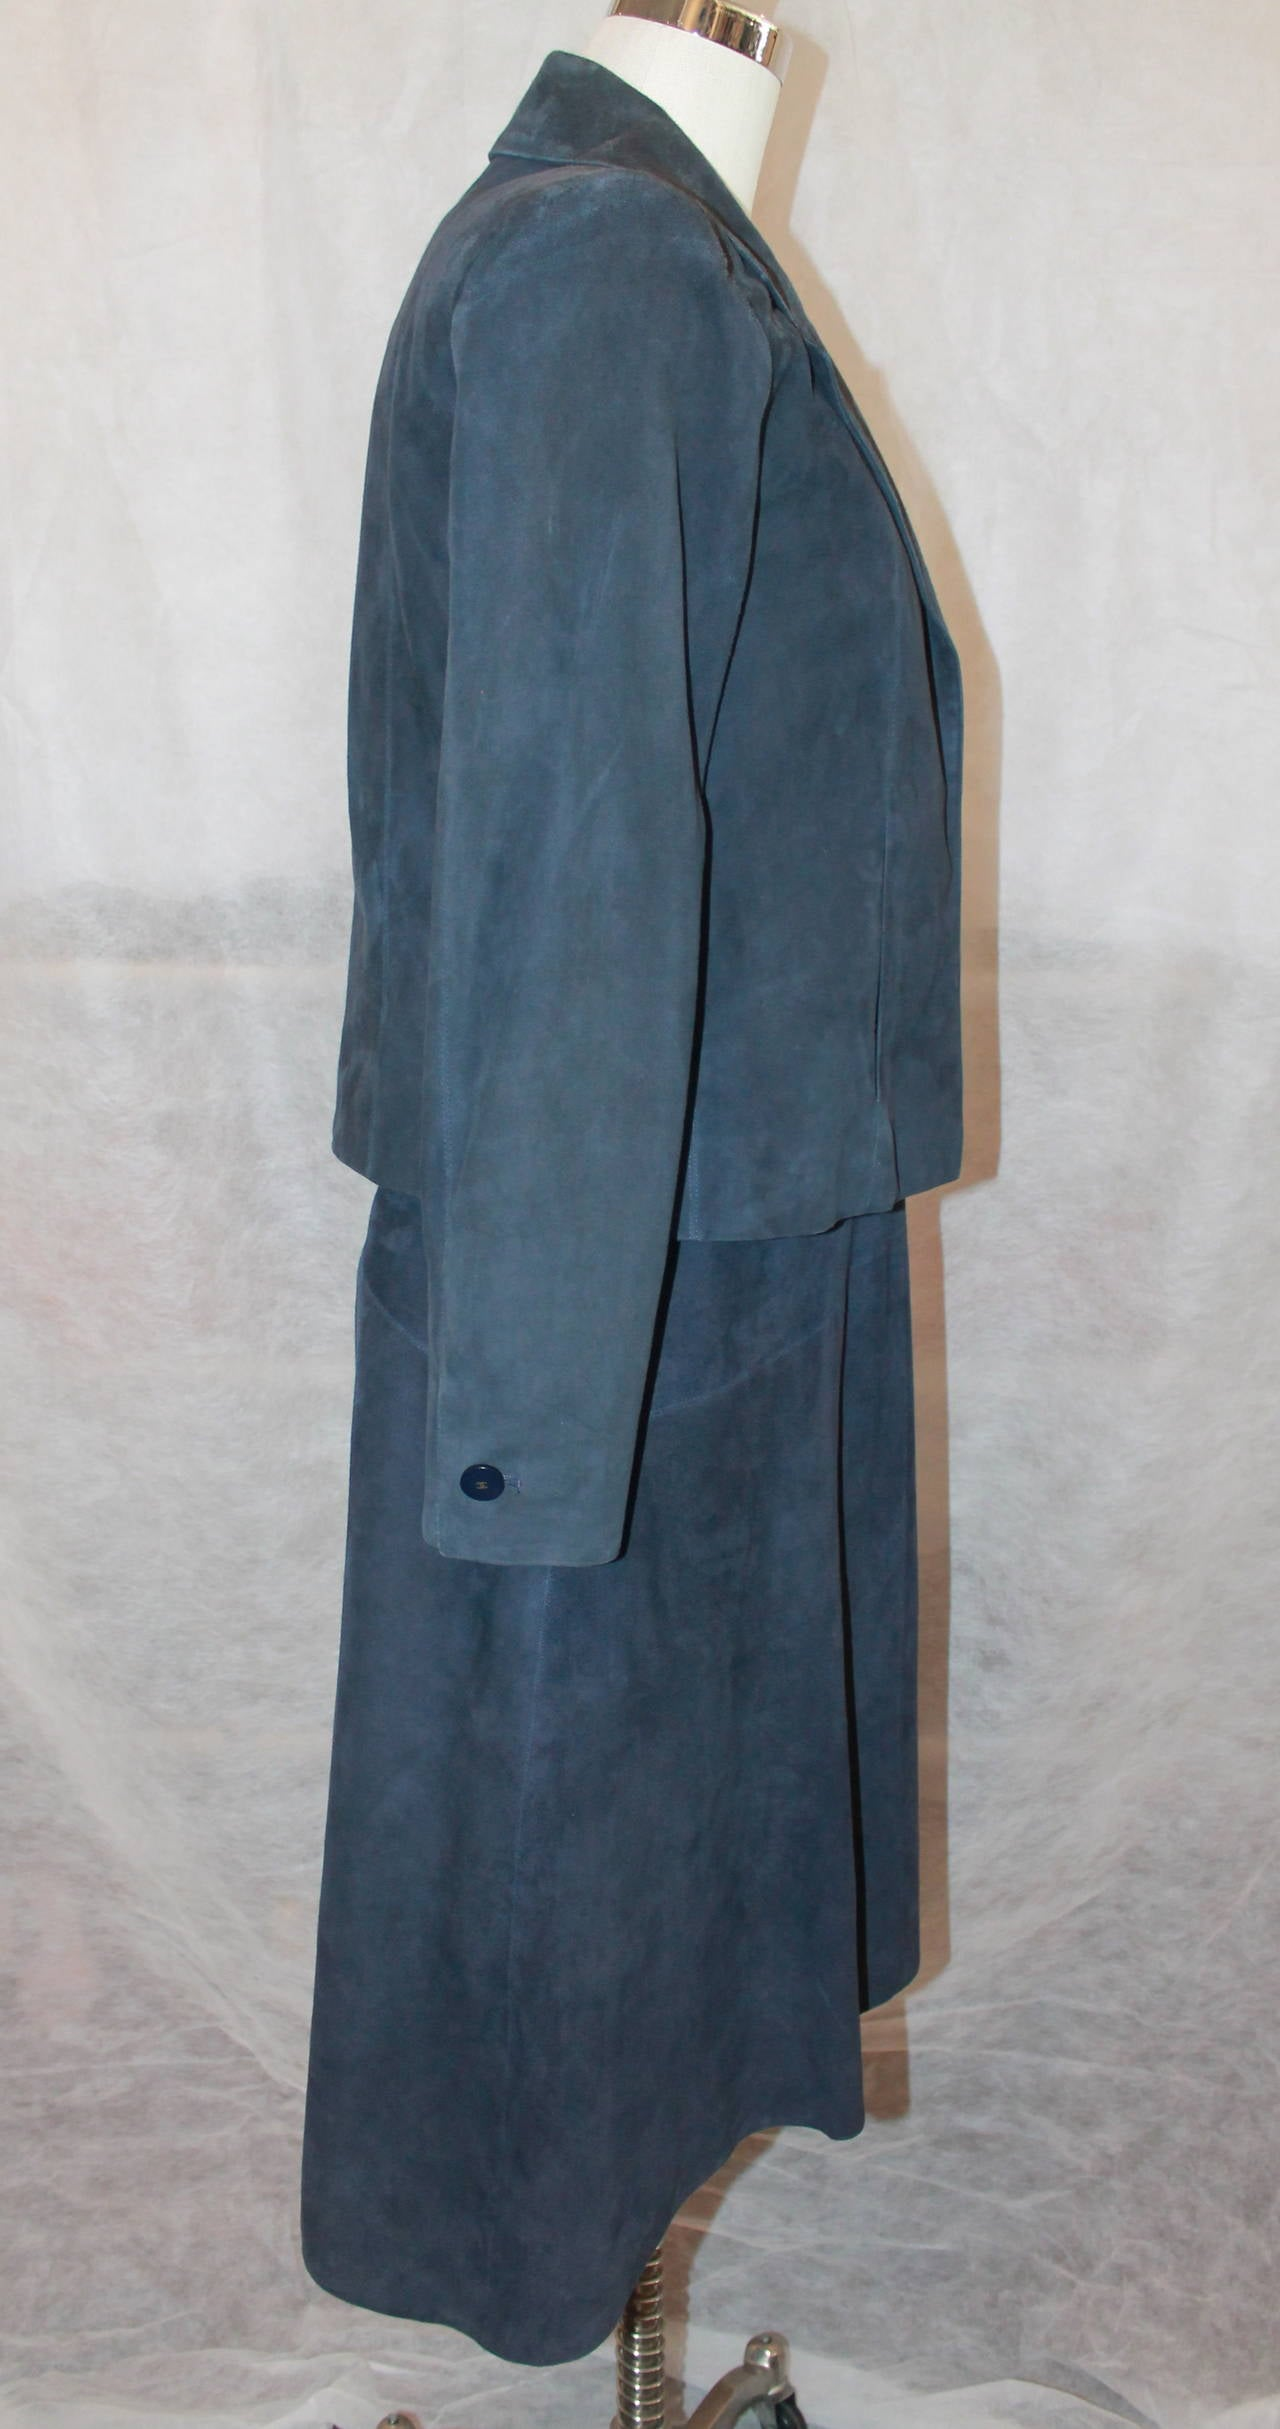 2002 Chanel Navy Suede Two Piece Dress and Jacket - 38 In Good Condition For Sale In Palm Beach, FL